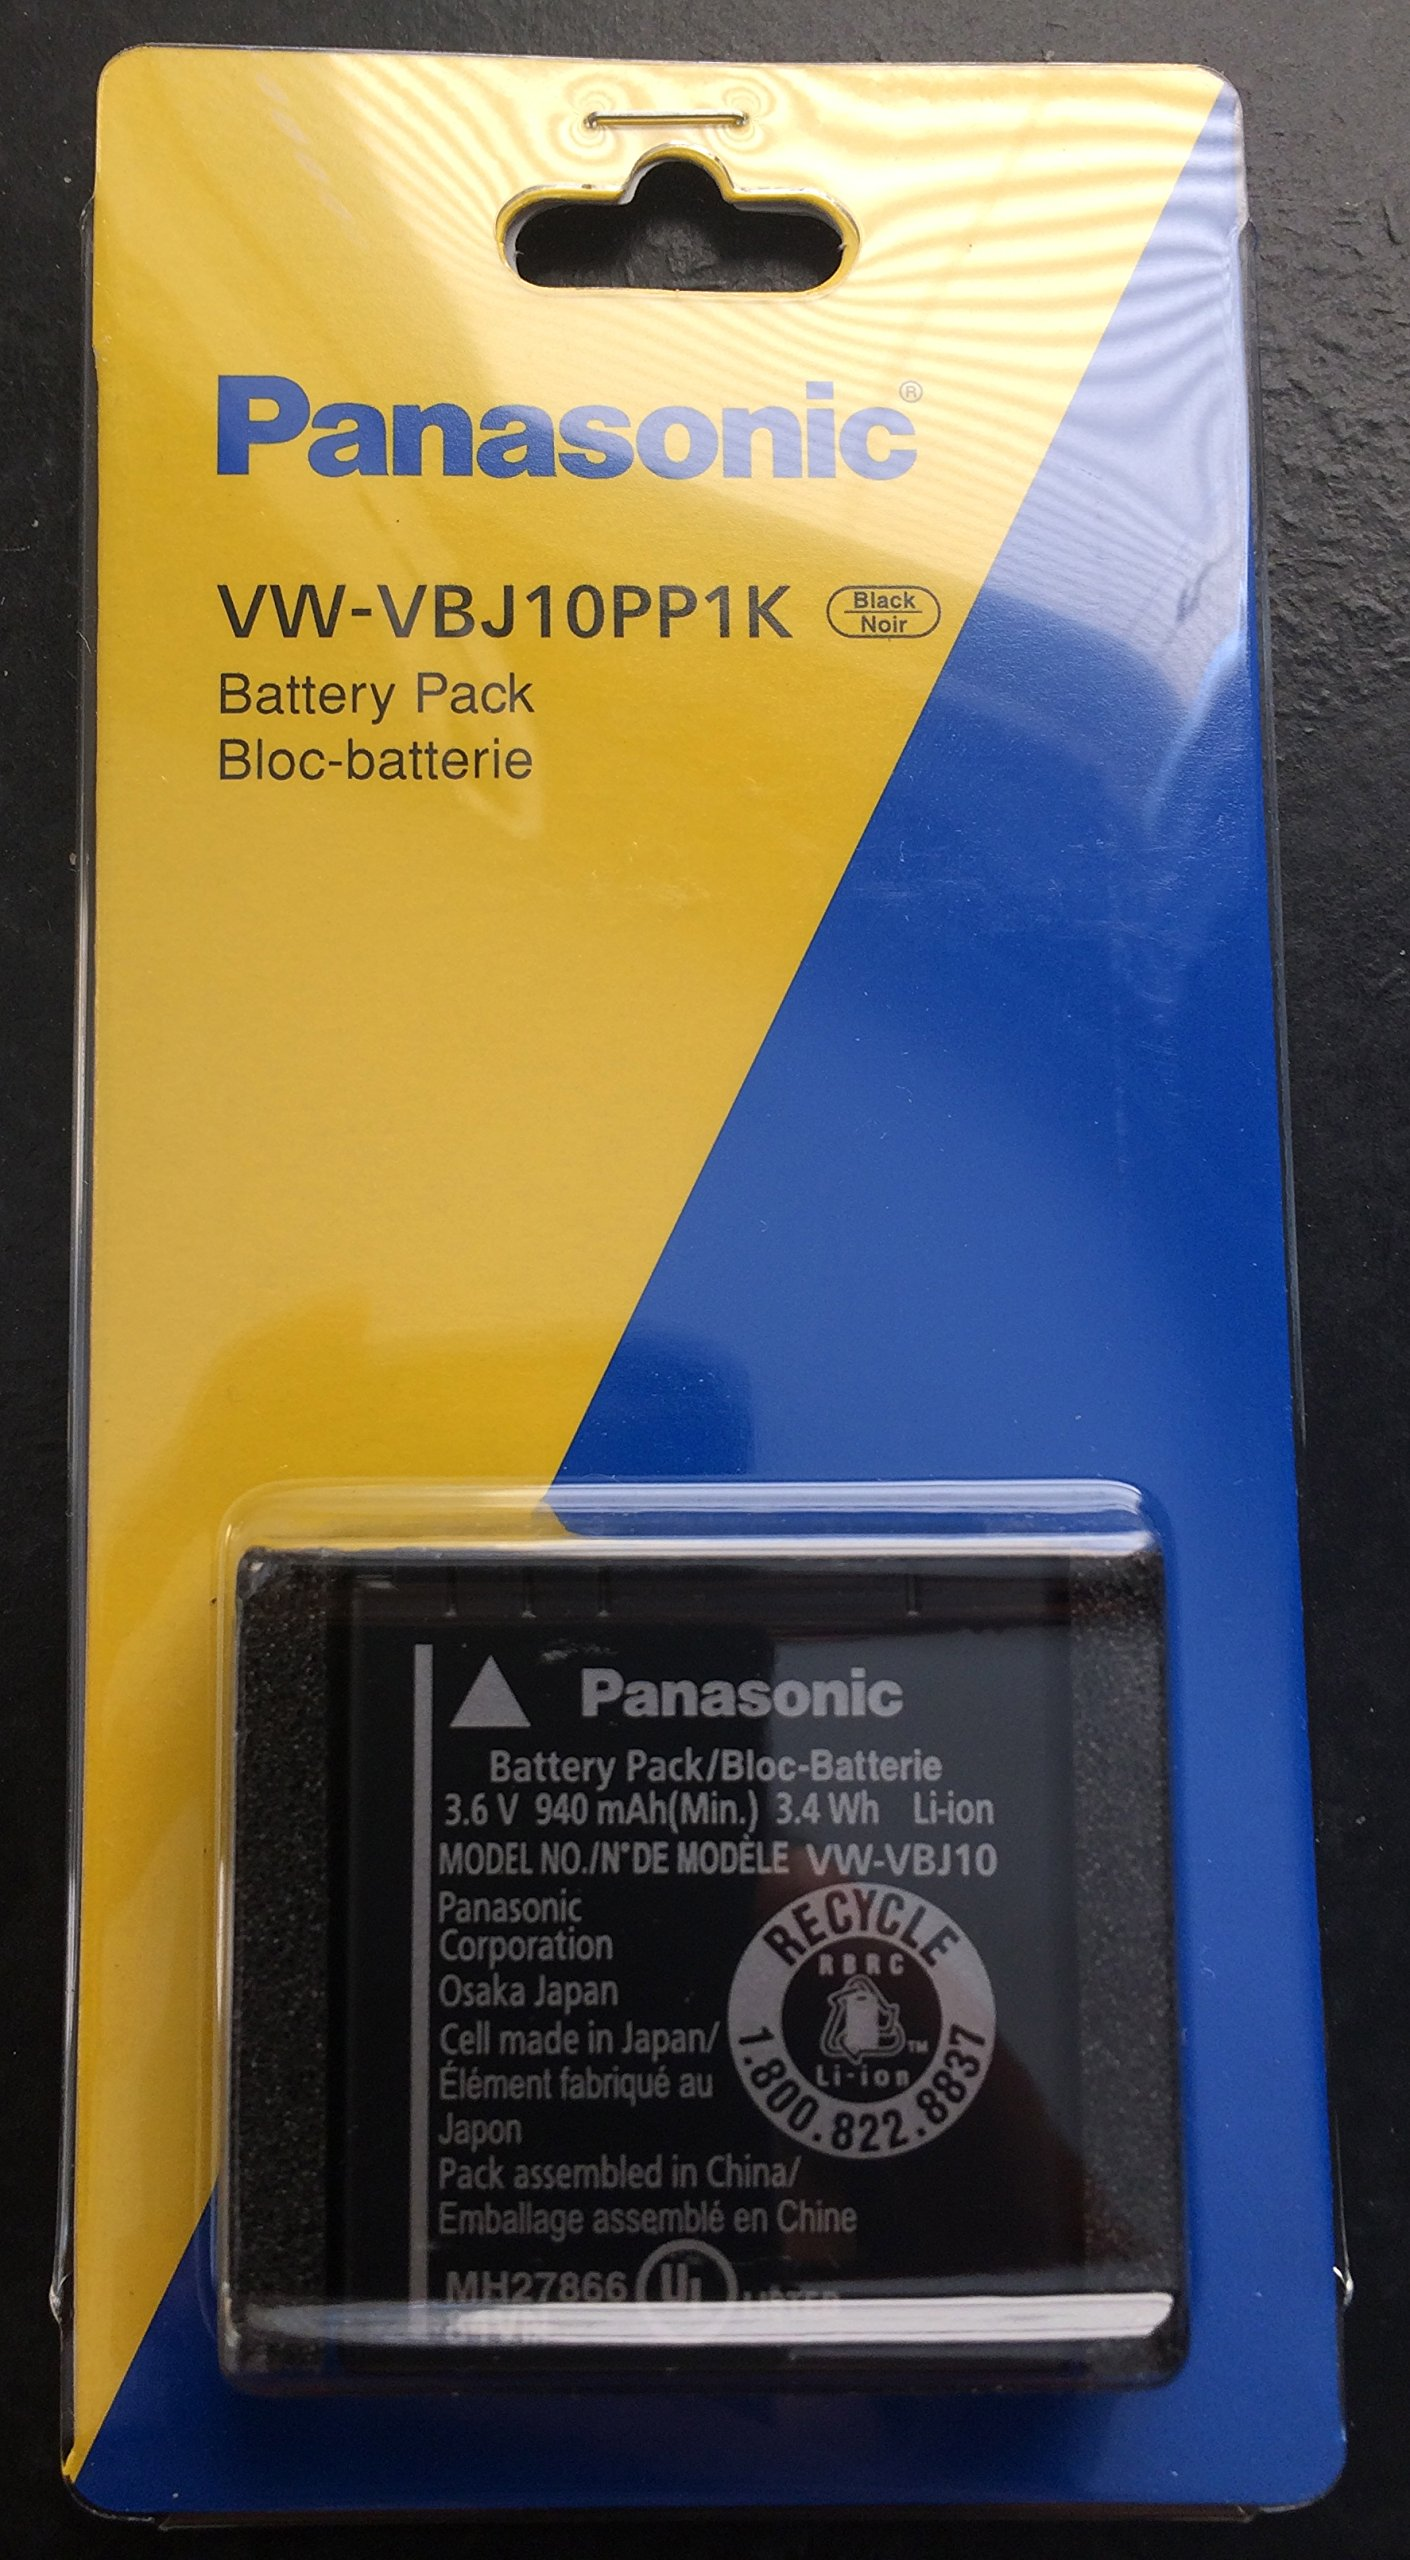 Panasonic Vw-Vbj10 Lithium Ion Camcorder Battery